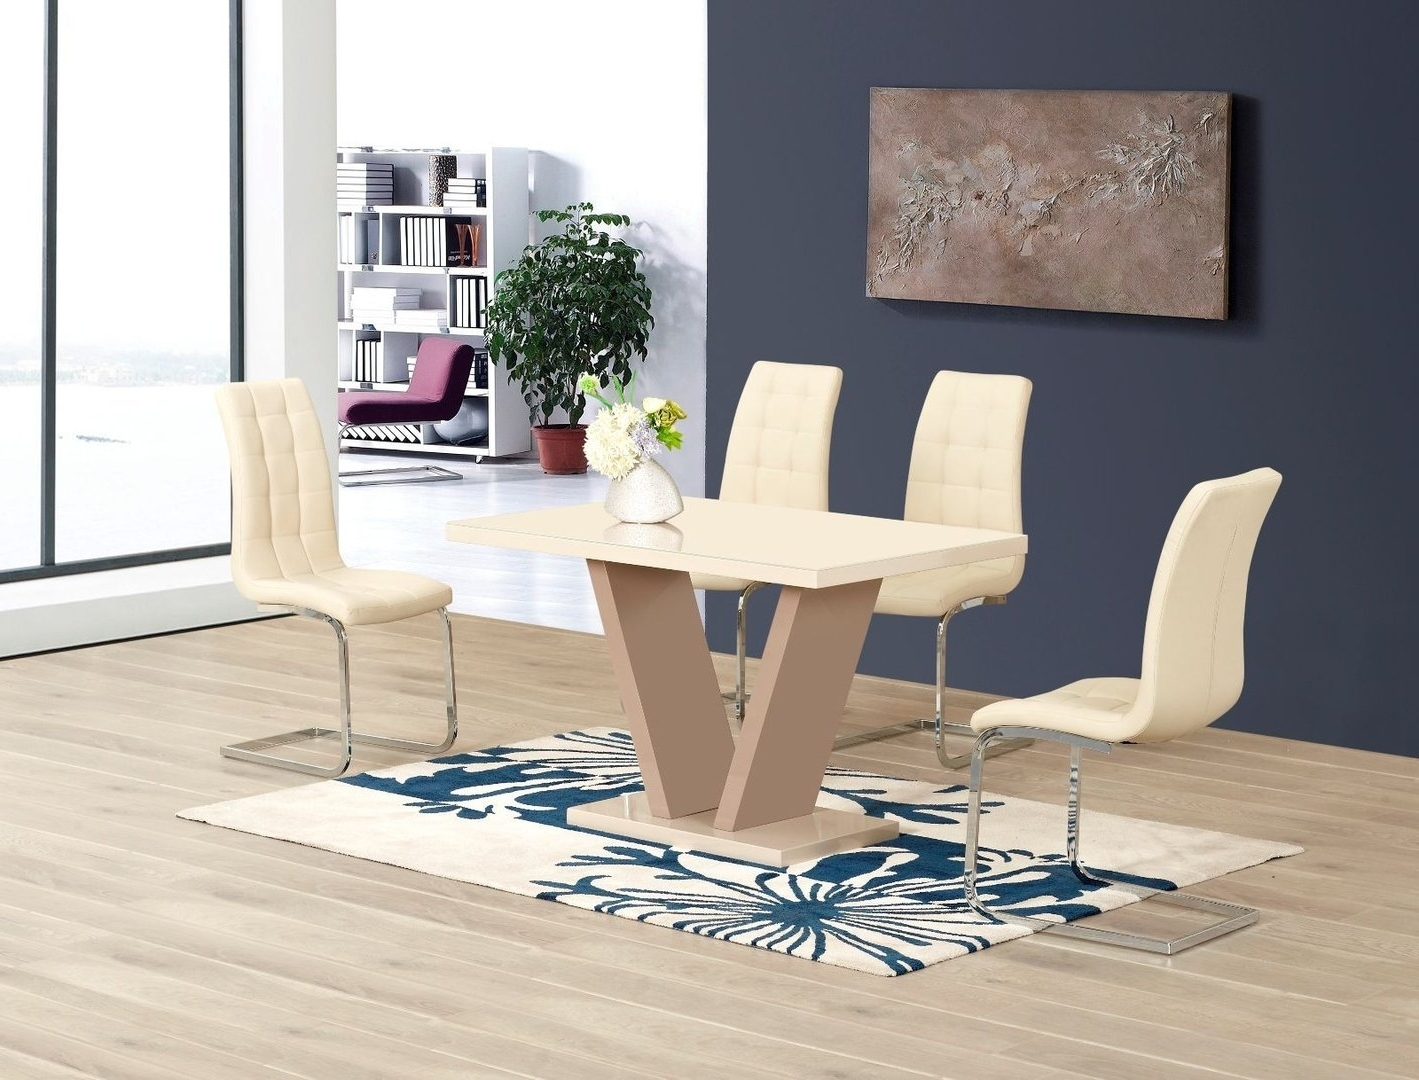 Most Up To Date Cream High Gloss Glass Dining Table And 6 Chairs – Homegenies Throughout Black Gloss Dining Tables And 6 Chairs (View 18 of 25)